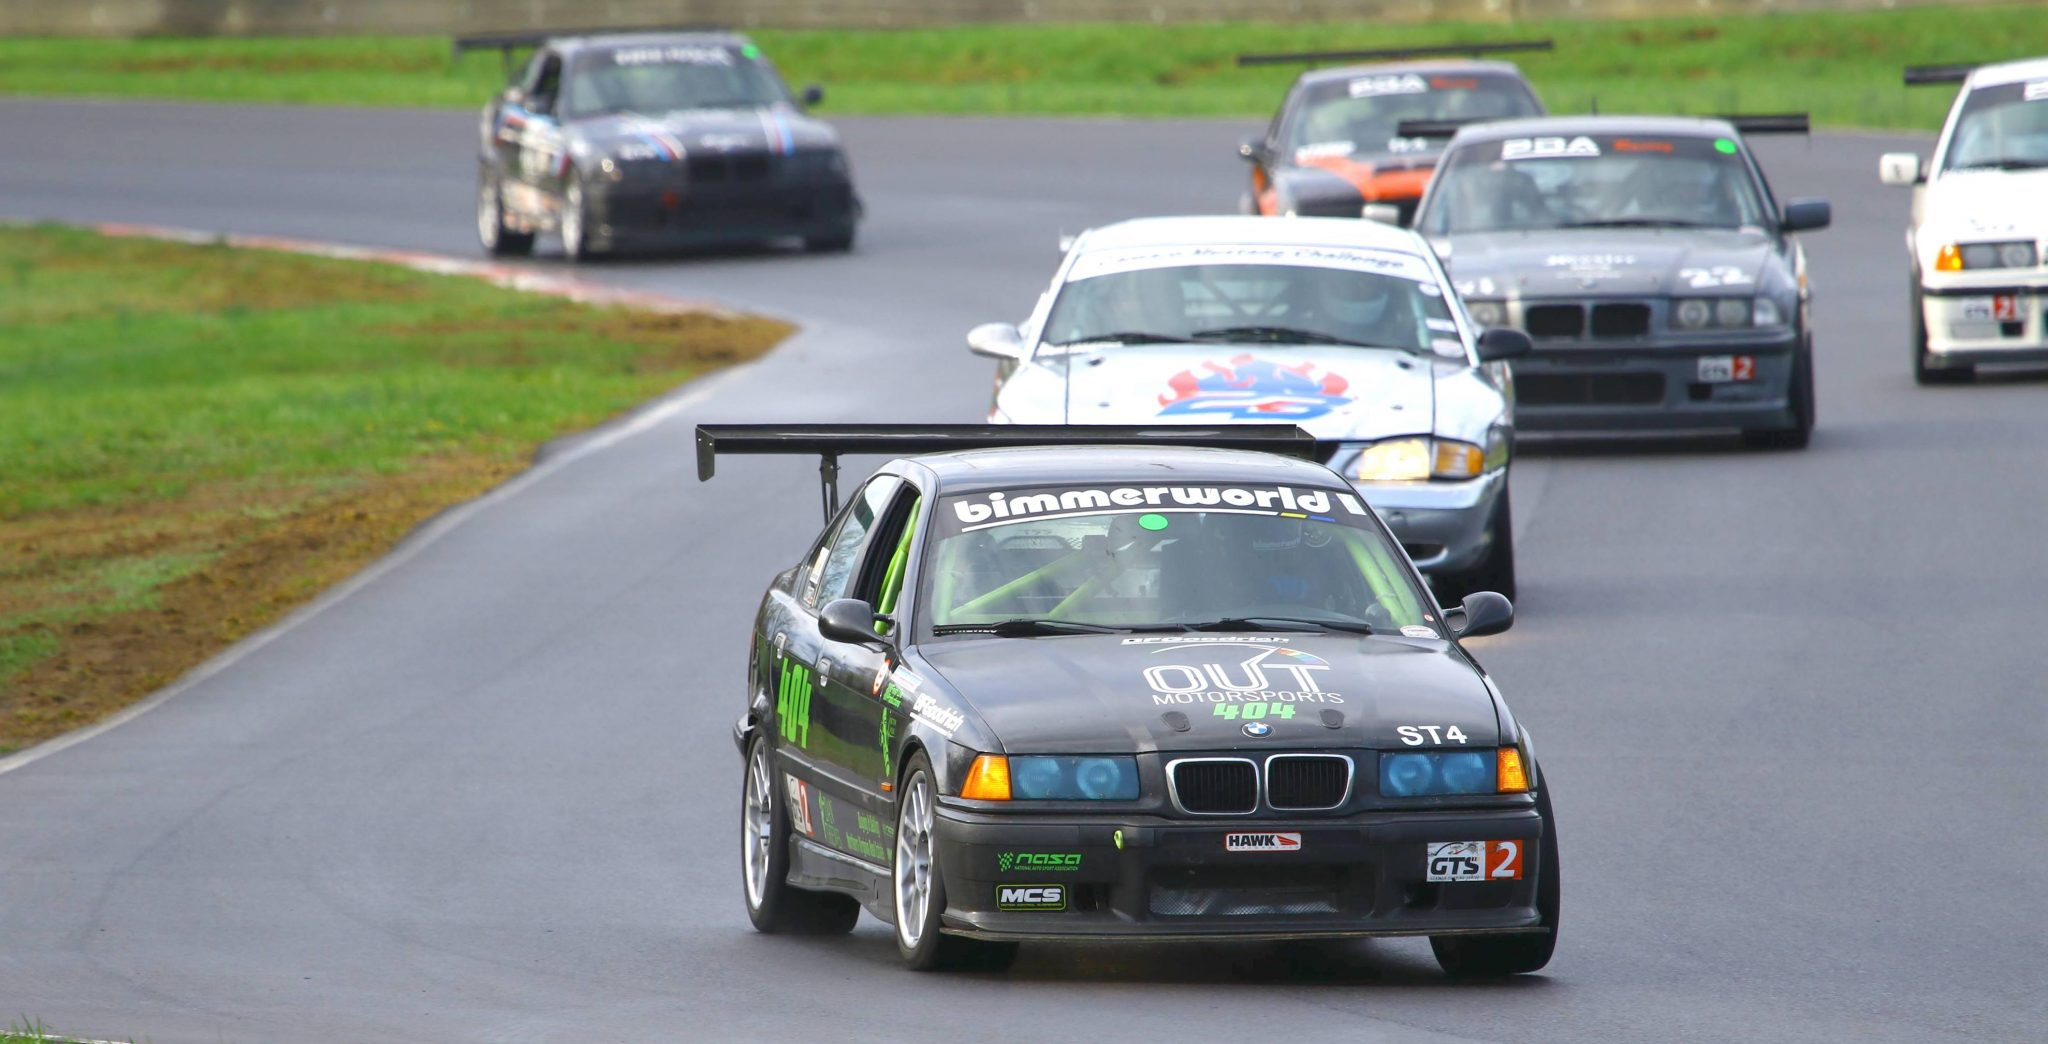 Thunder group qualifying at Summit Point